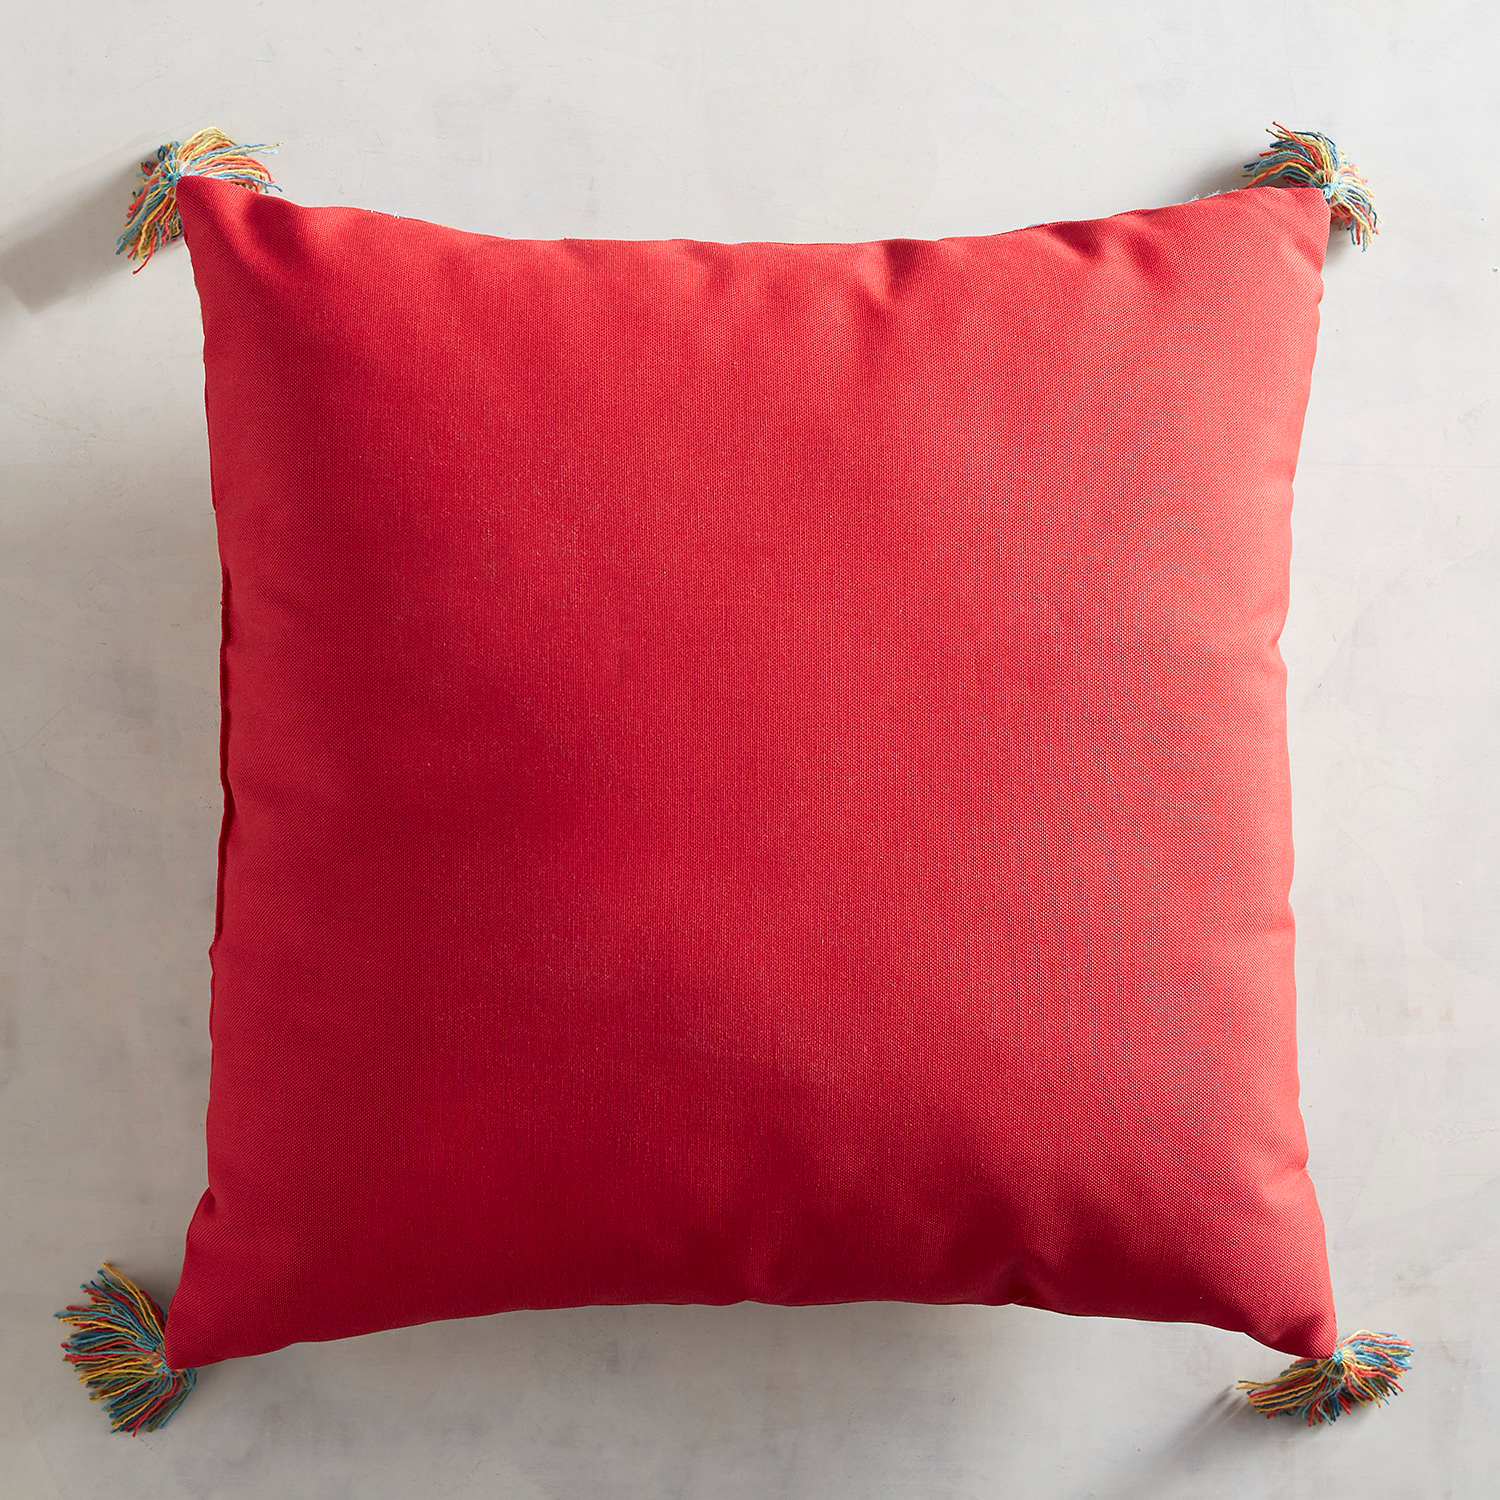 Embroidered Red Paisley Pillow with Tassels